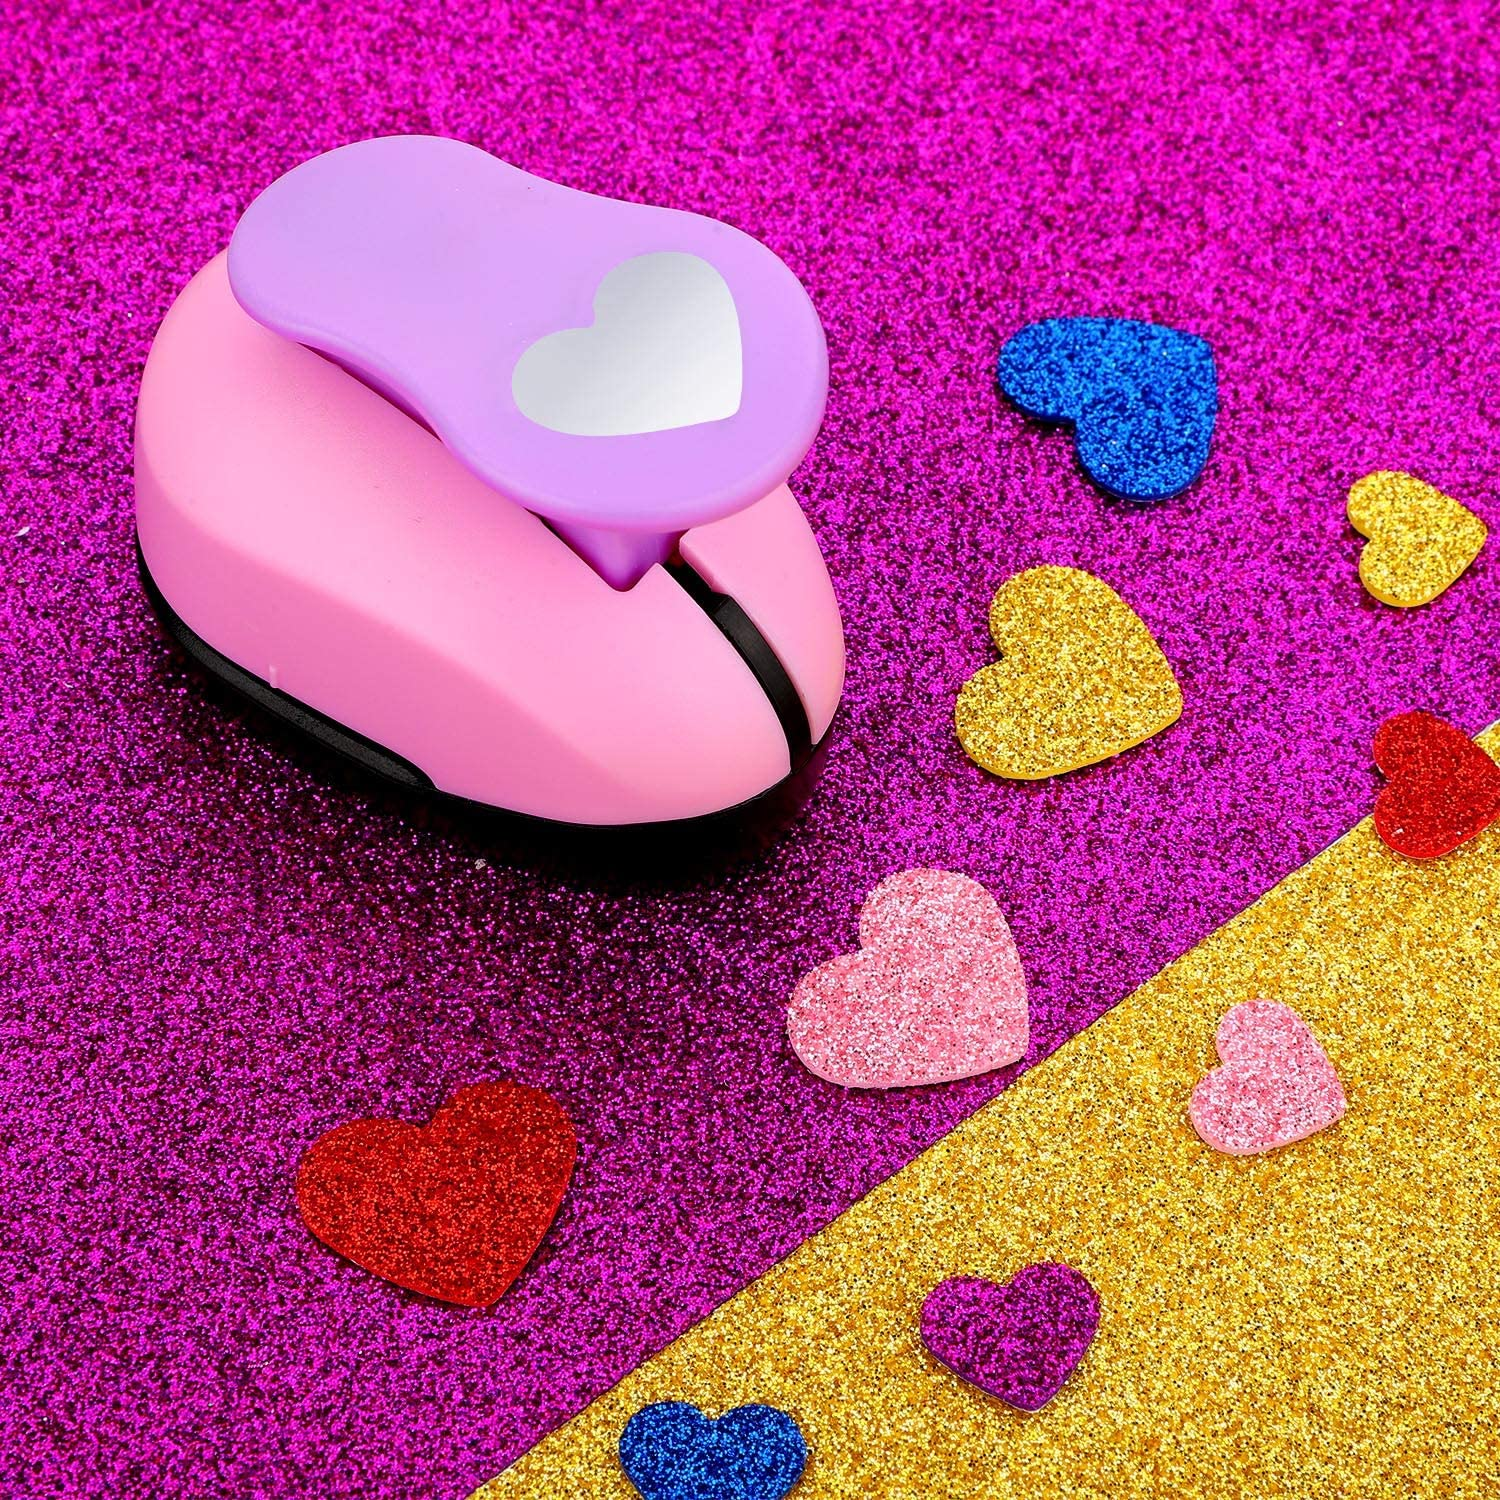 2 Pieces Heart Shape Crafts Hole Punches Printing Paper Punches for Crafting Scrapbooking Cards Arts 15 mm and 25 mm